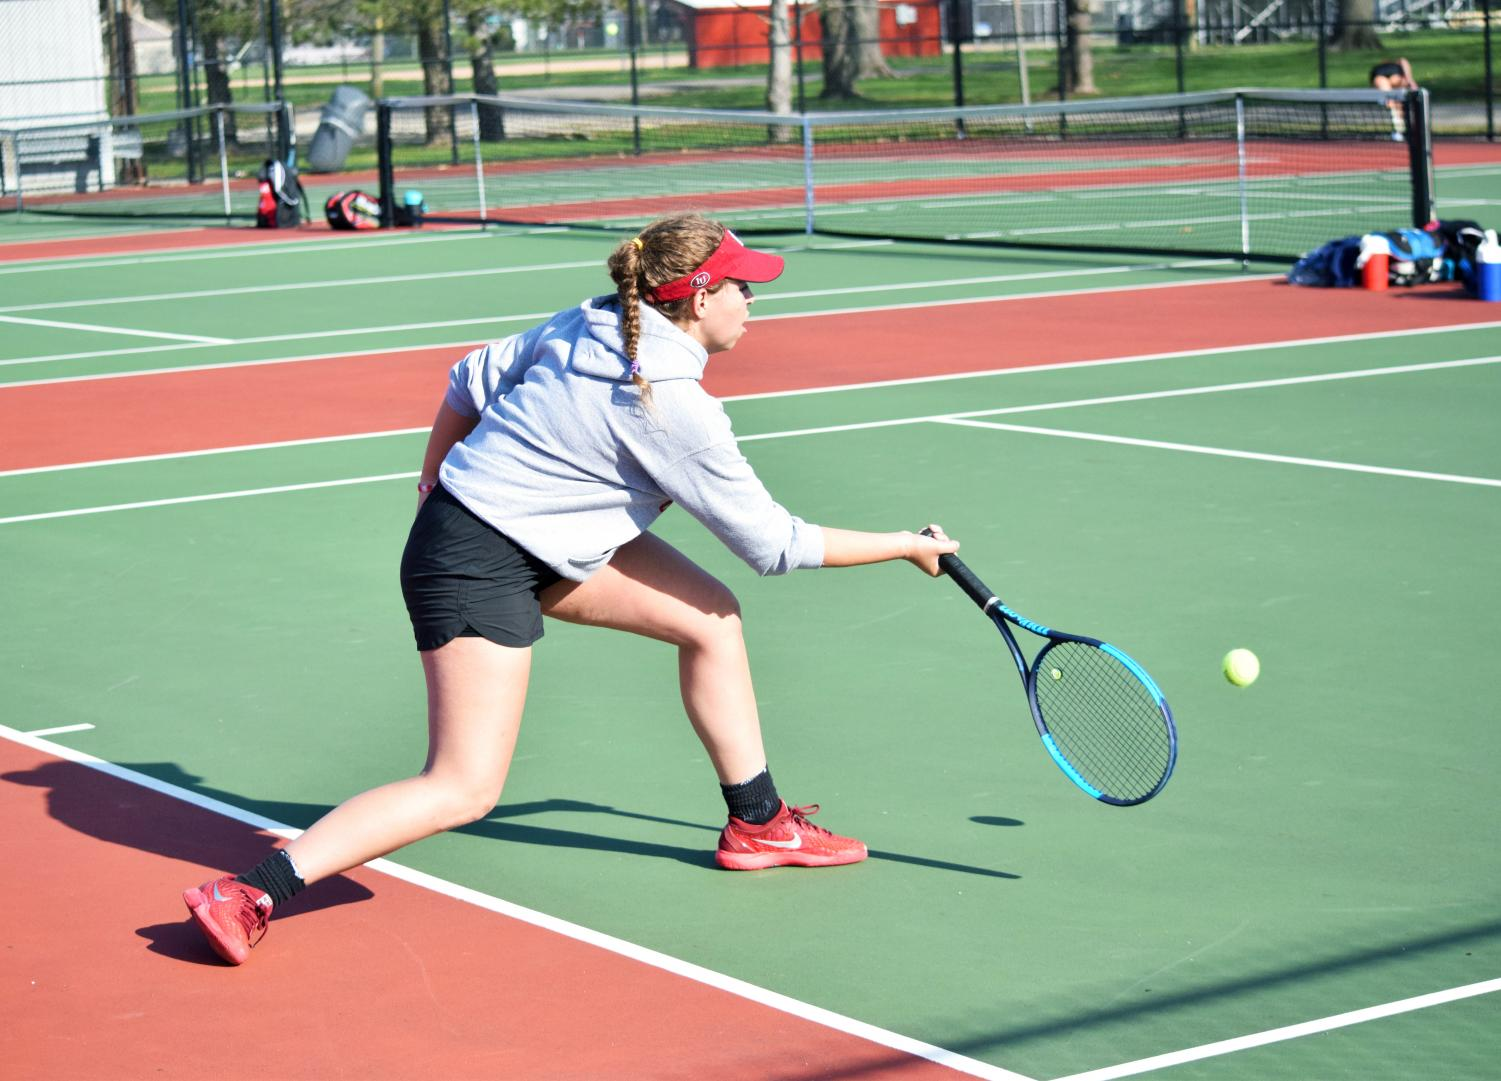 Junior Camille Khelseau returns the ball to her opponent in the first set of her match on April 17. Khelseau played first singles and lost in a very close tie breaker in the third set.